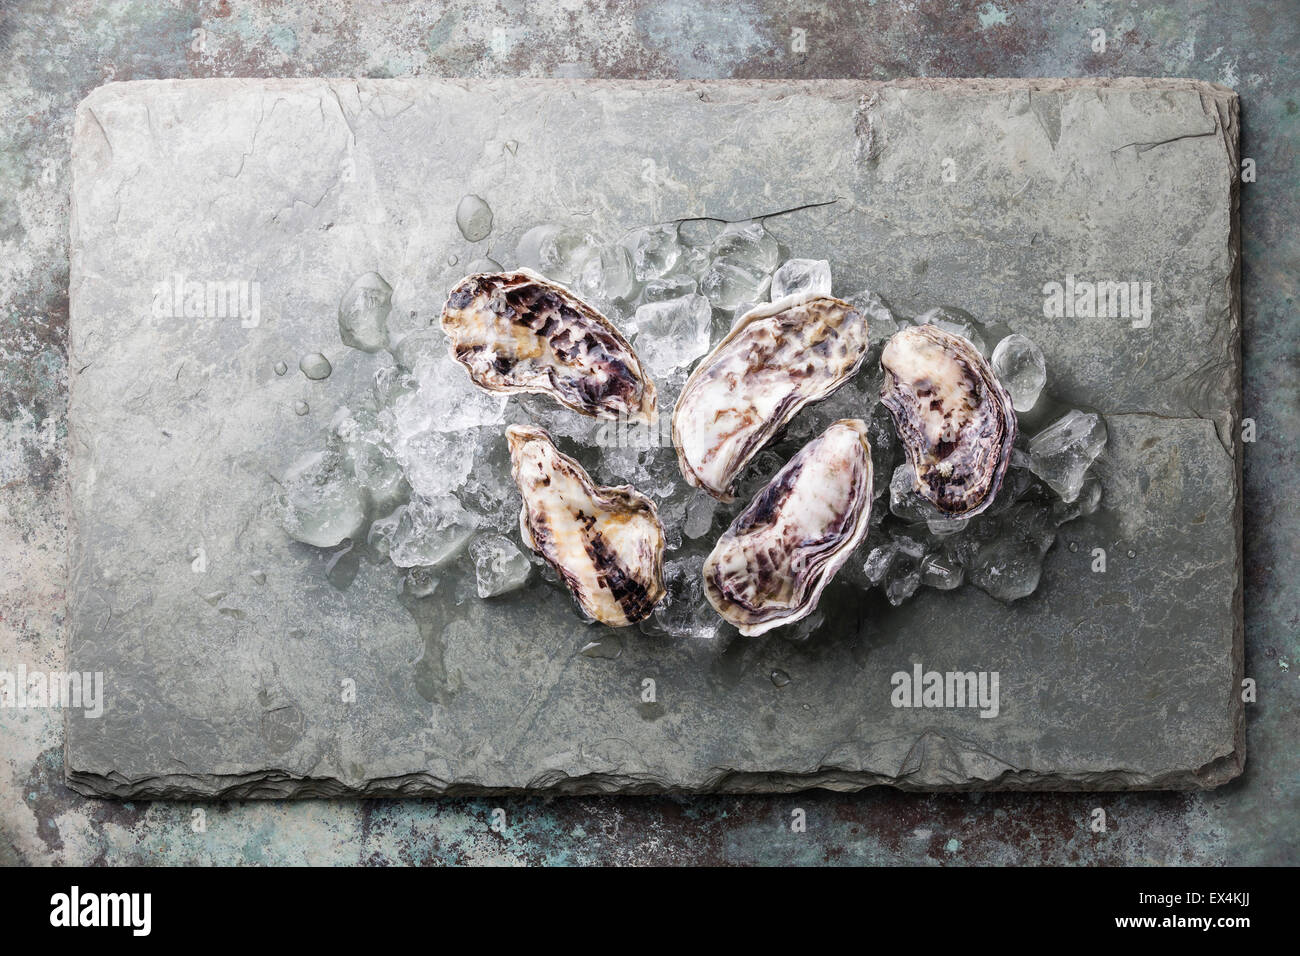 Five fresh raw Oysters on stone background with ice - Stock Image